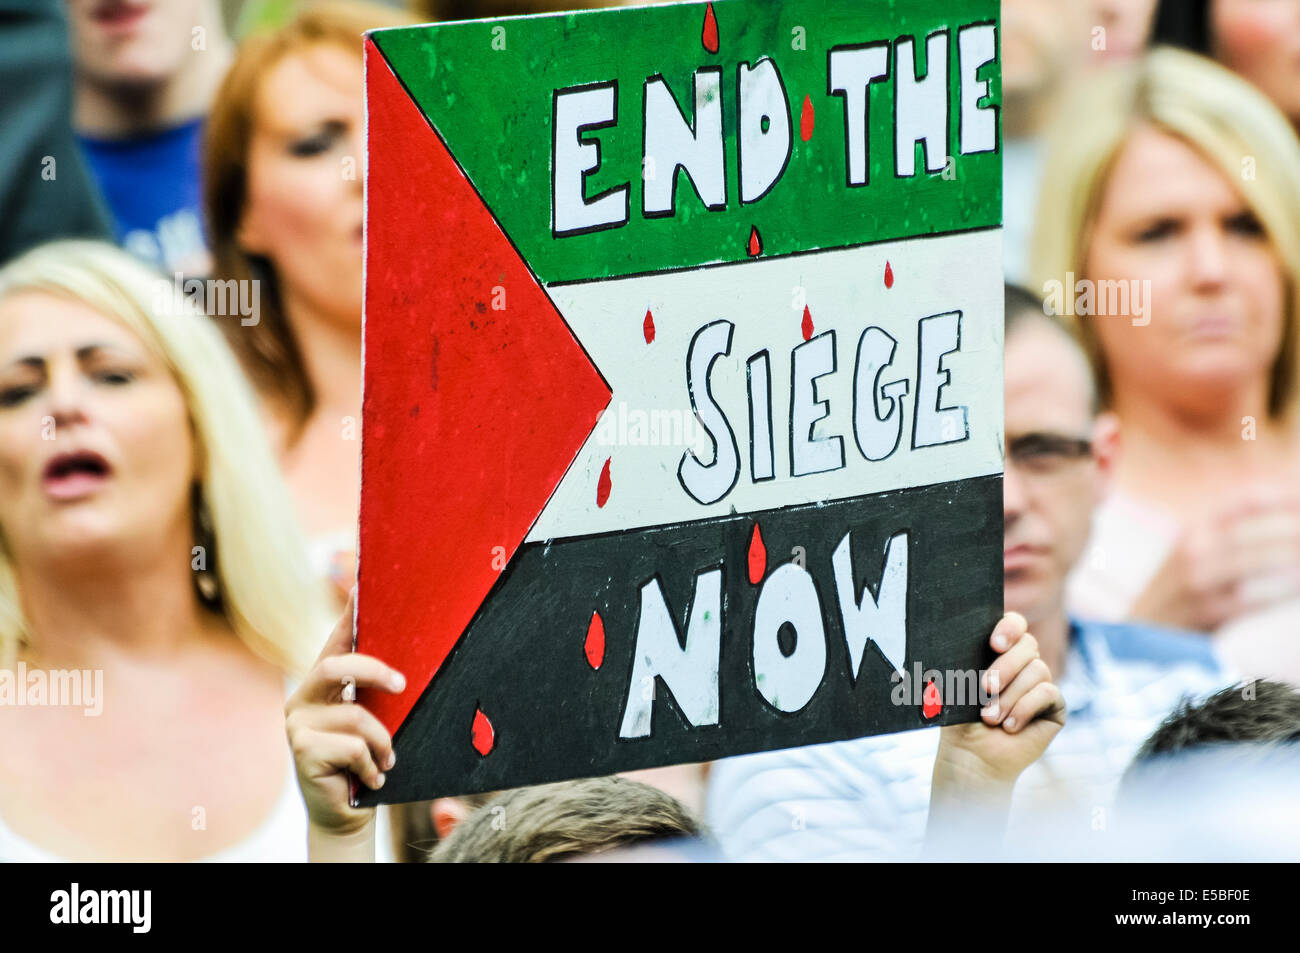 Belfast, Northern Ireland. 26 Jul 2014 - A protester holds up a poster saying 'End the seige now' at a pro - Stock Image